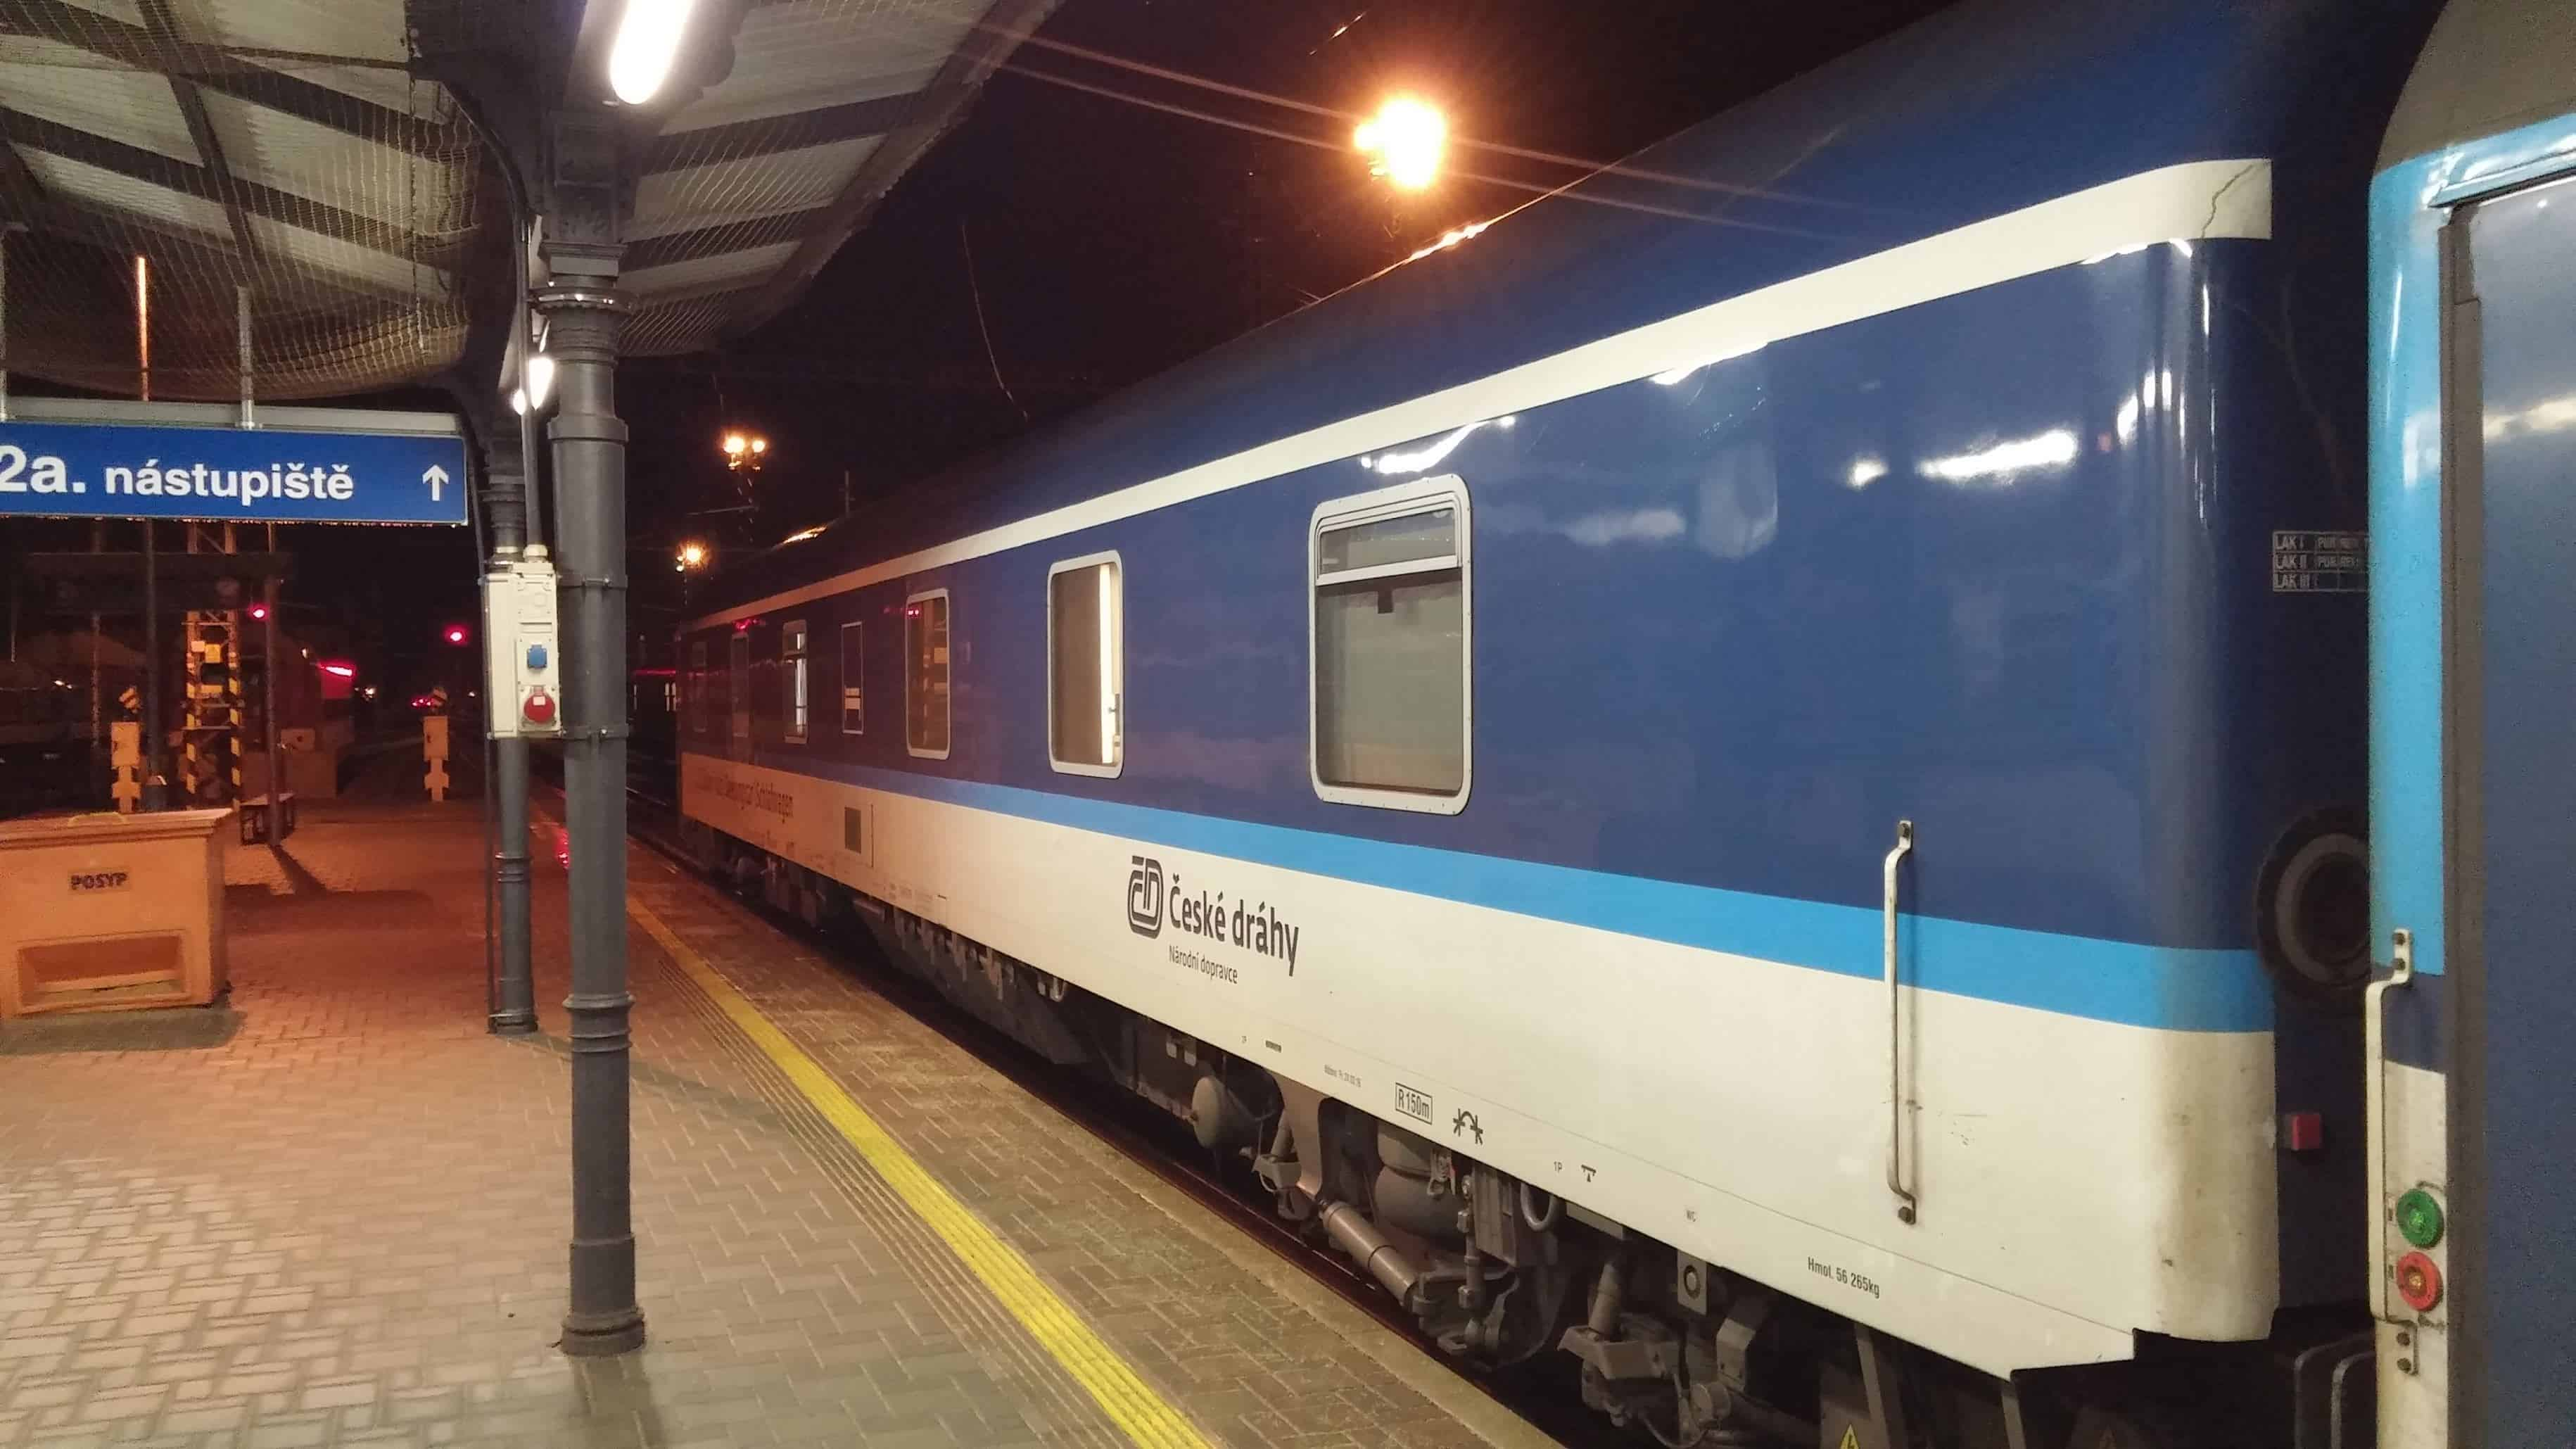 The sleeping car from Prague to Zurich at the station of Ceske Budejovice.